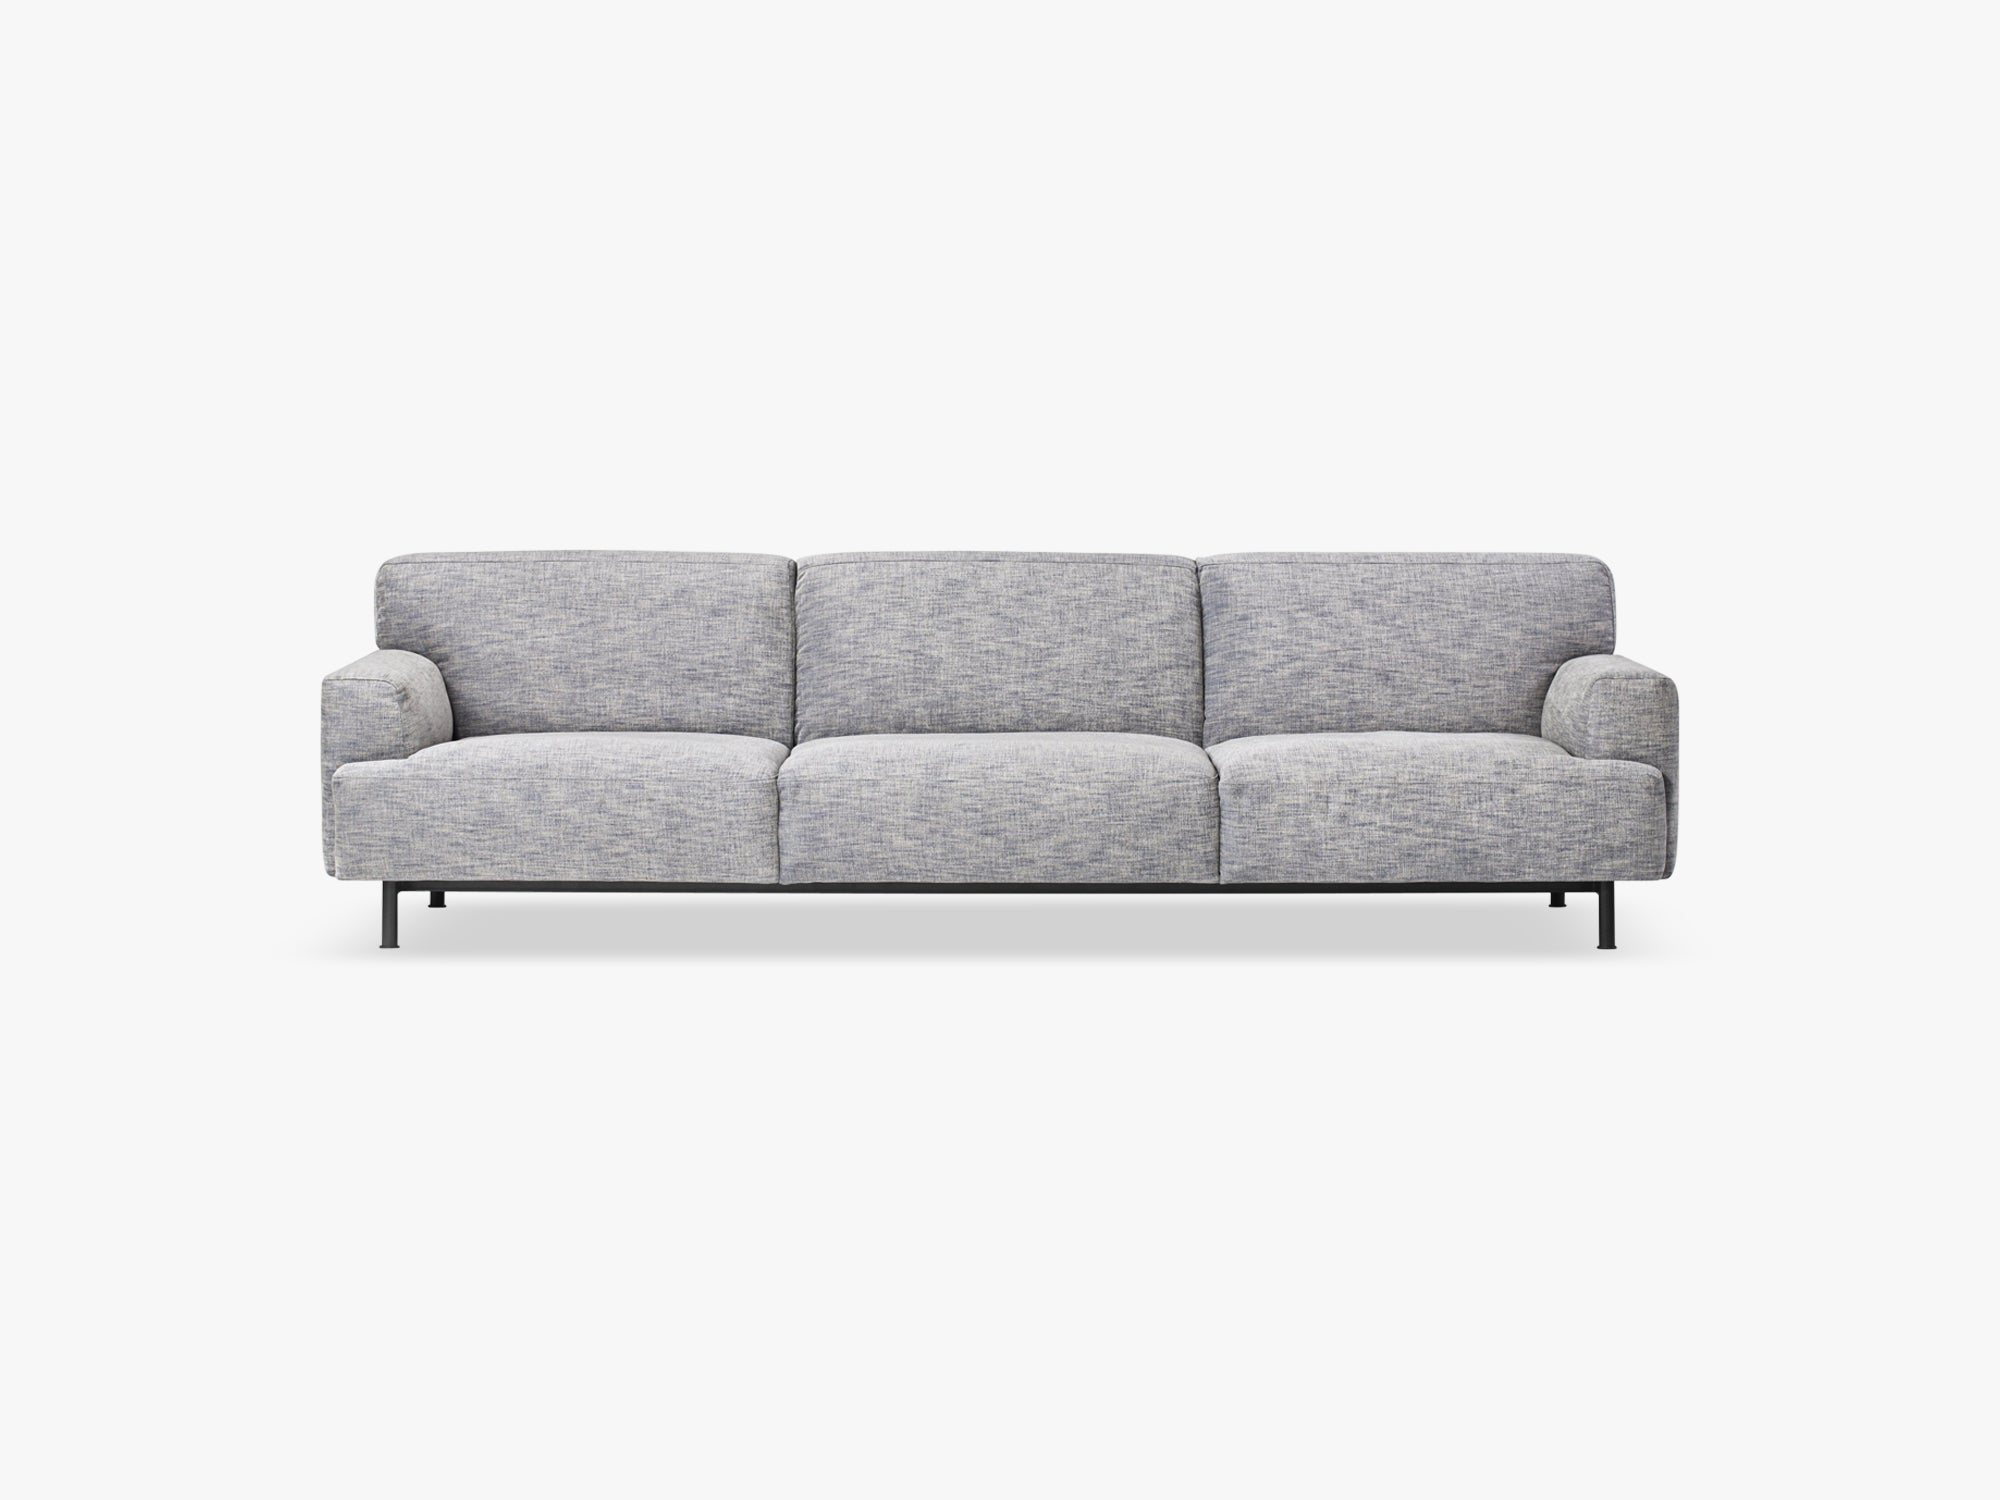 Plenty Sofa/4 Seater, Maple Viscose Fabric fra MILLION